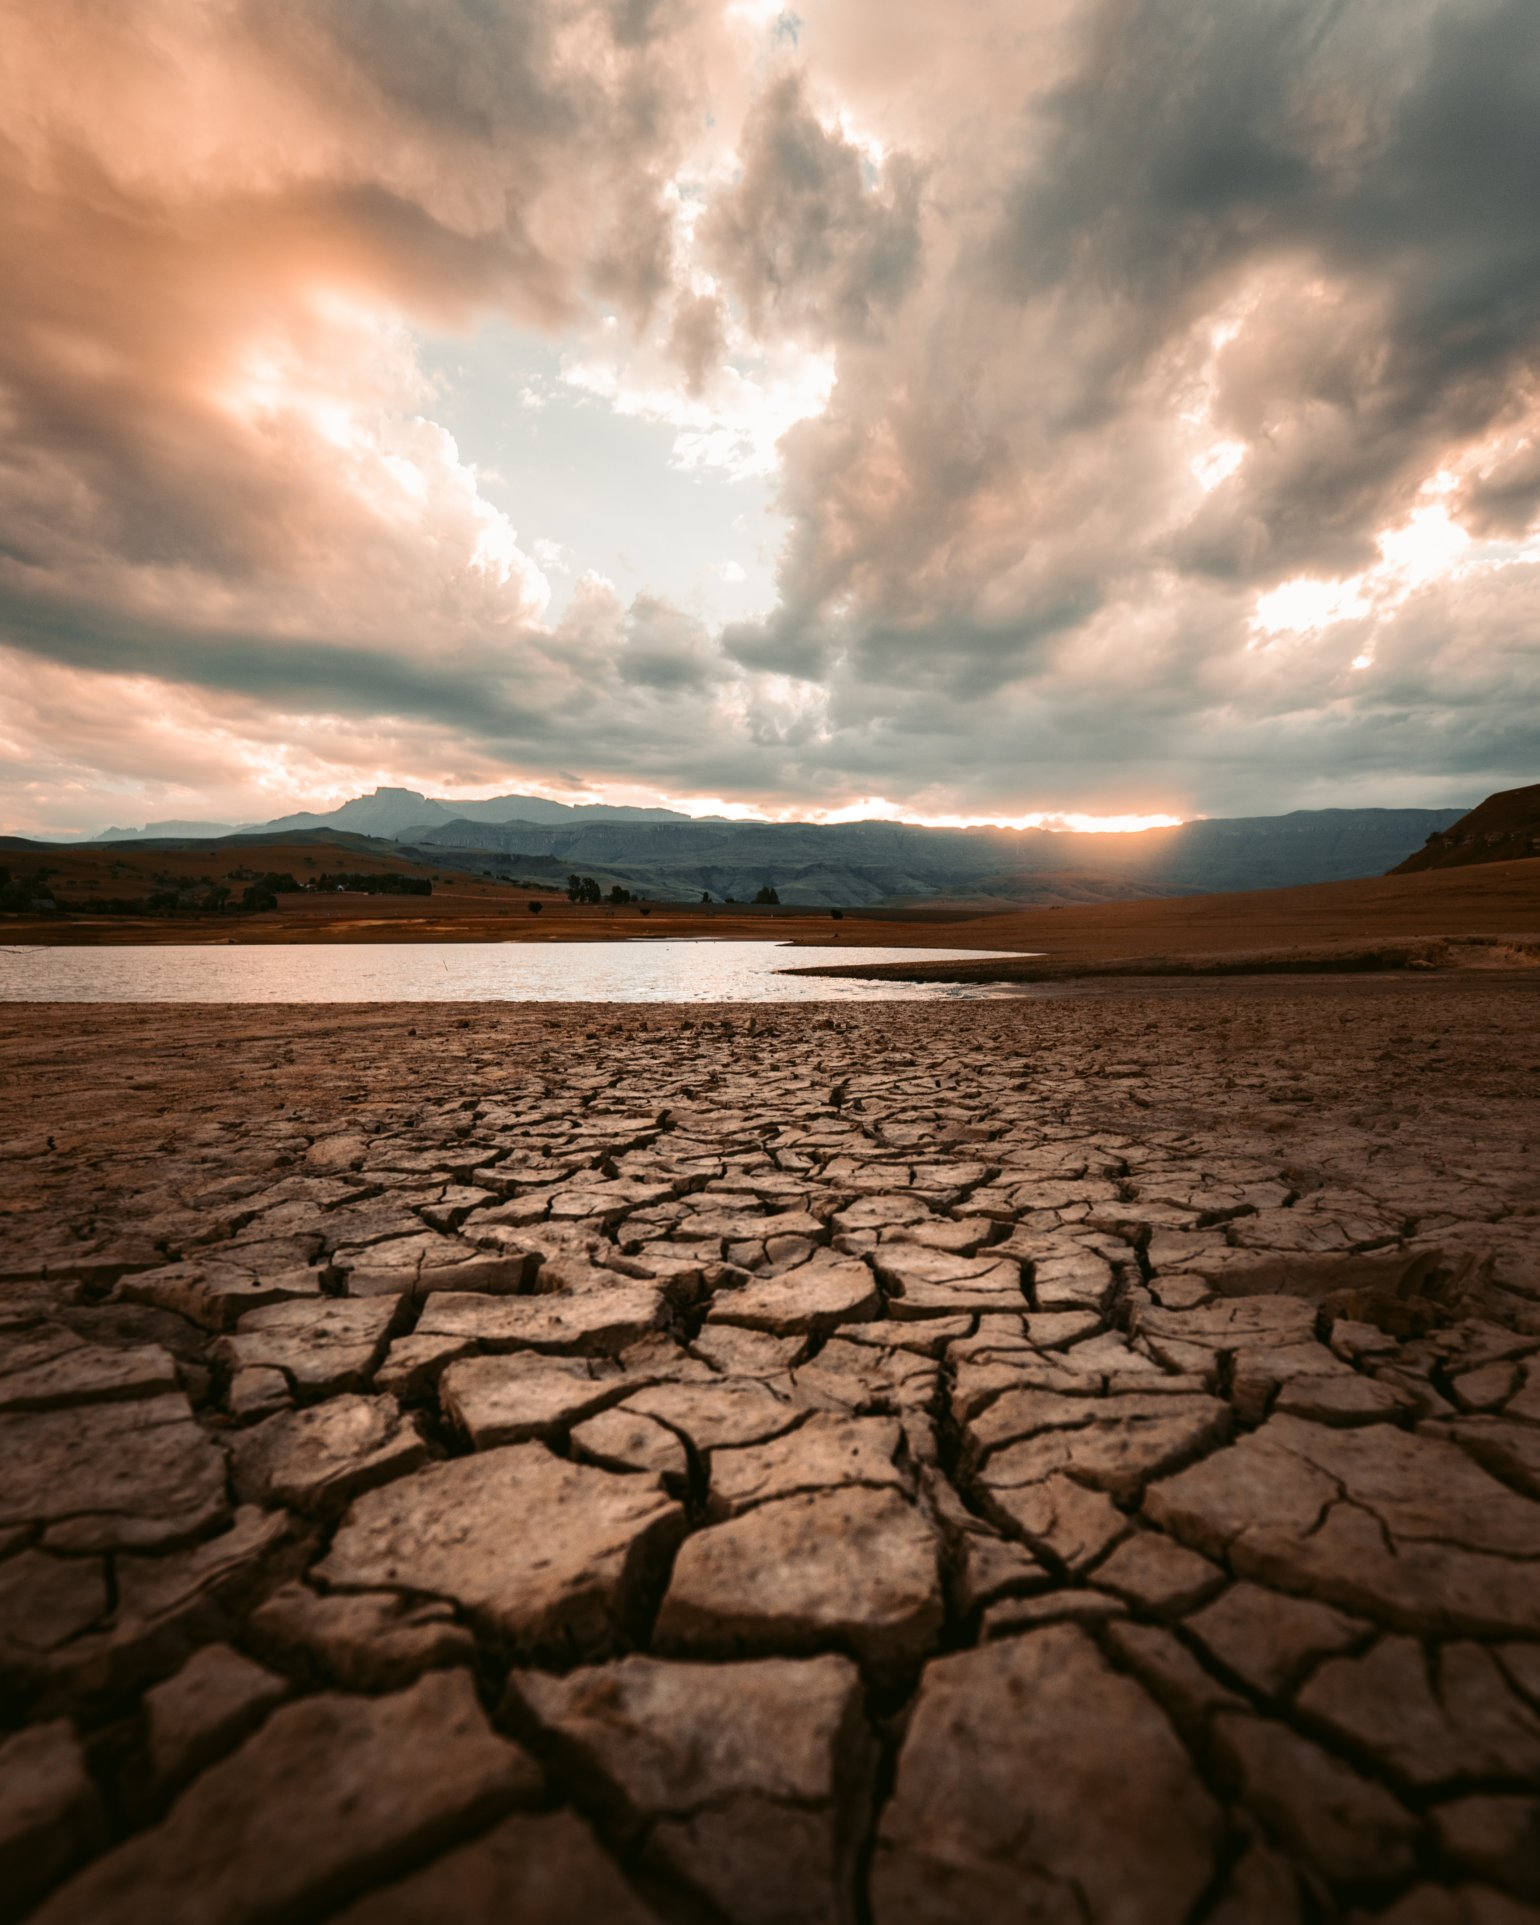 Environment, natural resources and climate change